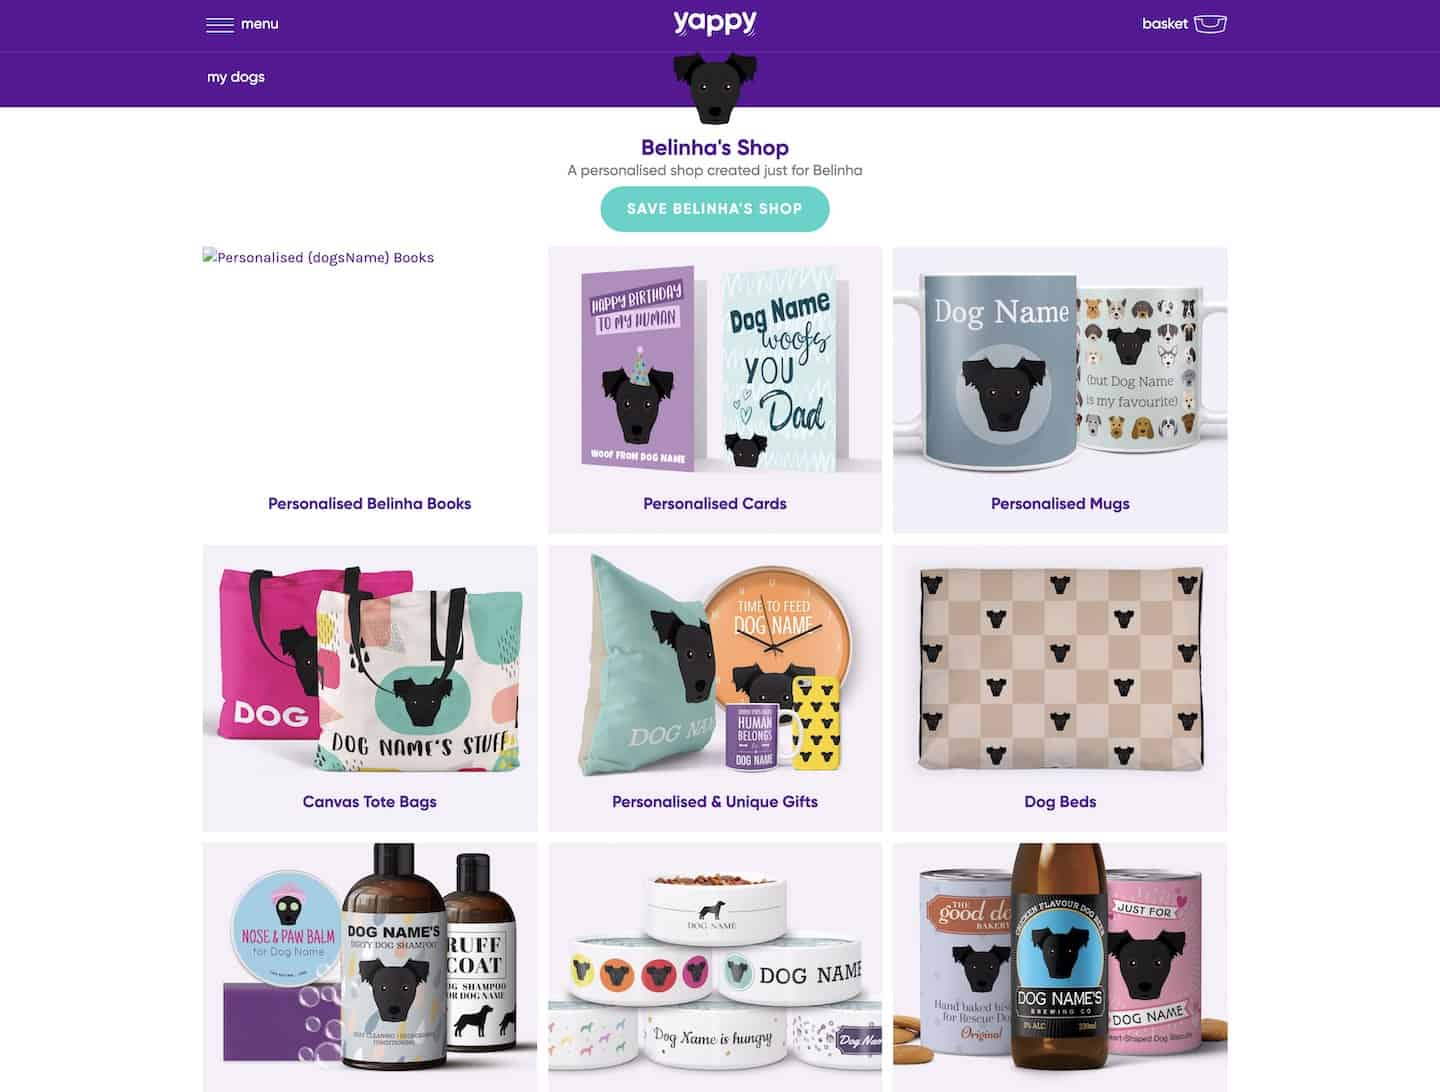 The Best Personalised Pet Gifts For Dog Owners - Yappy.com